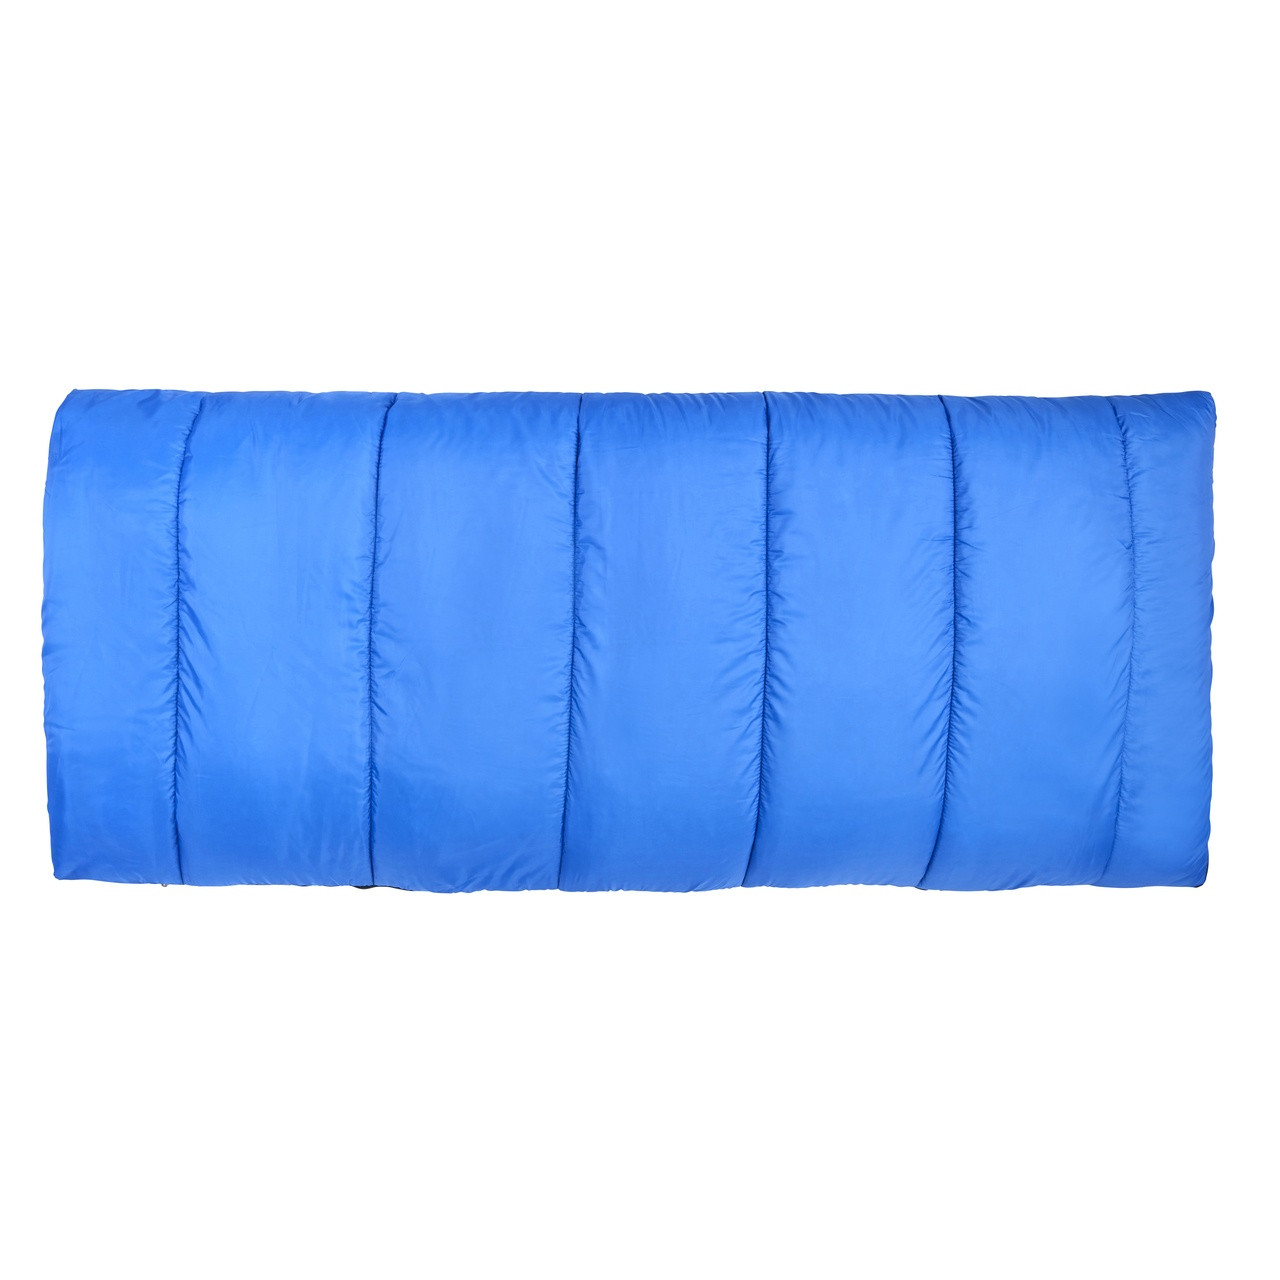 Wenzel Apache 30 degree sleeping bag, blue, fully zipped